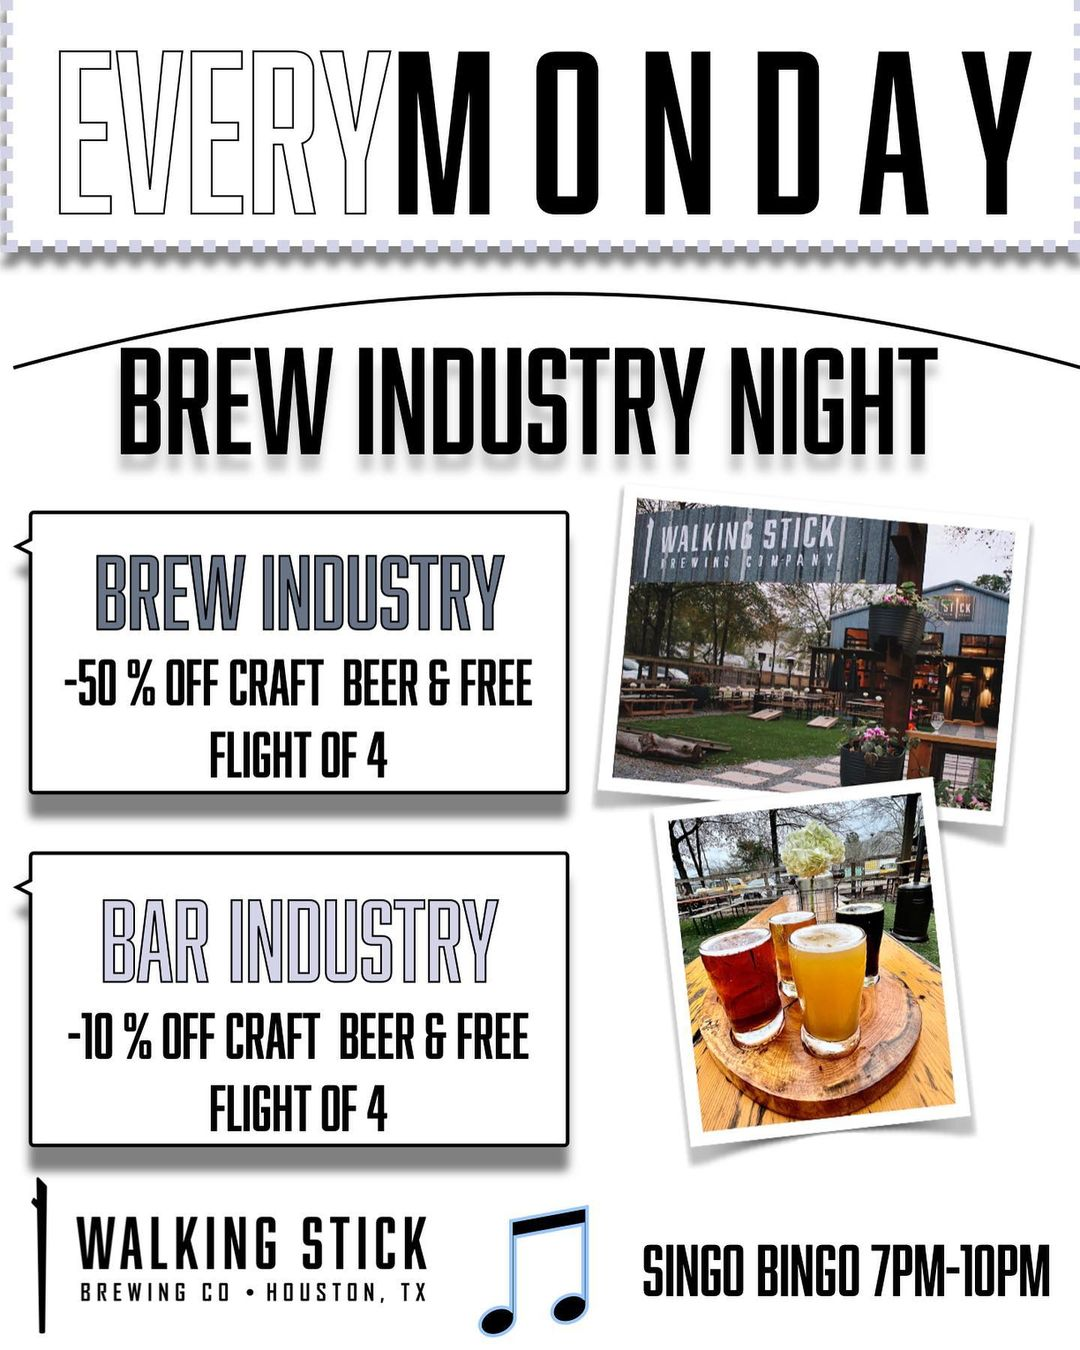 Check out our newest Monday night addition!   Did you know we are one of the few breweries to be open 7 days a week?!?   Well, we surely would hope to meet and mingle with some of our brewNdustry friends more often and welcome you every Monday night. Ask your server for details!   SINGO Bingo kicks off tonight with @timewellwastedtexas and @djbrockstar713 from 7-10pm every Monday night!   @pappaaldos will be offering a salad and pizza combo prize along with beers and swag from the Stick!  Can't wait to host you all! ✌🏽🍻😷